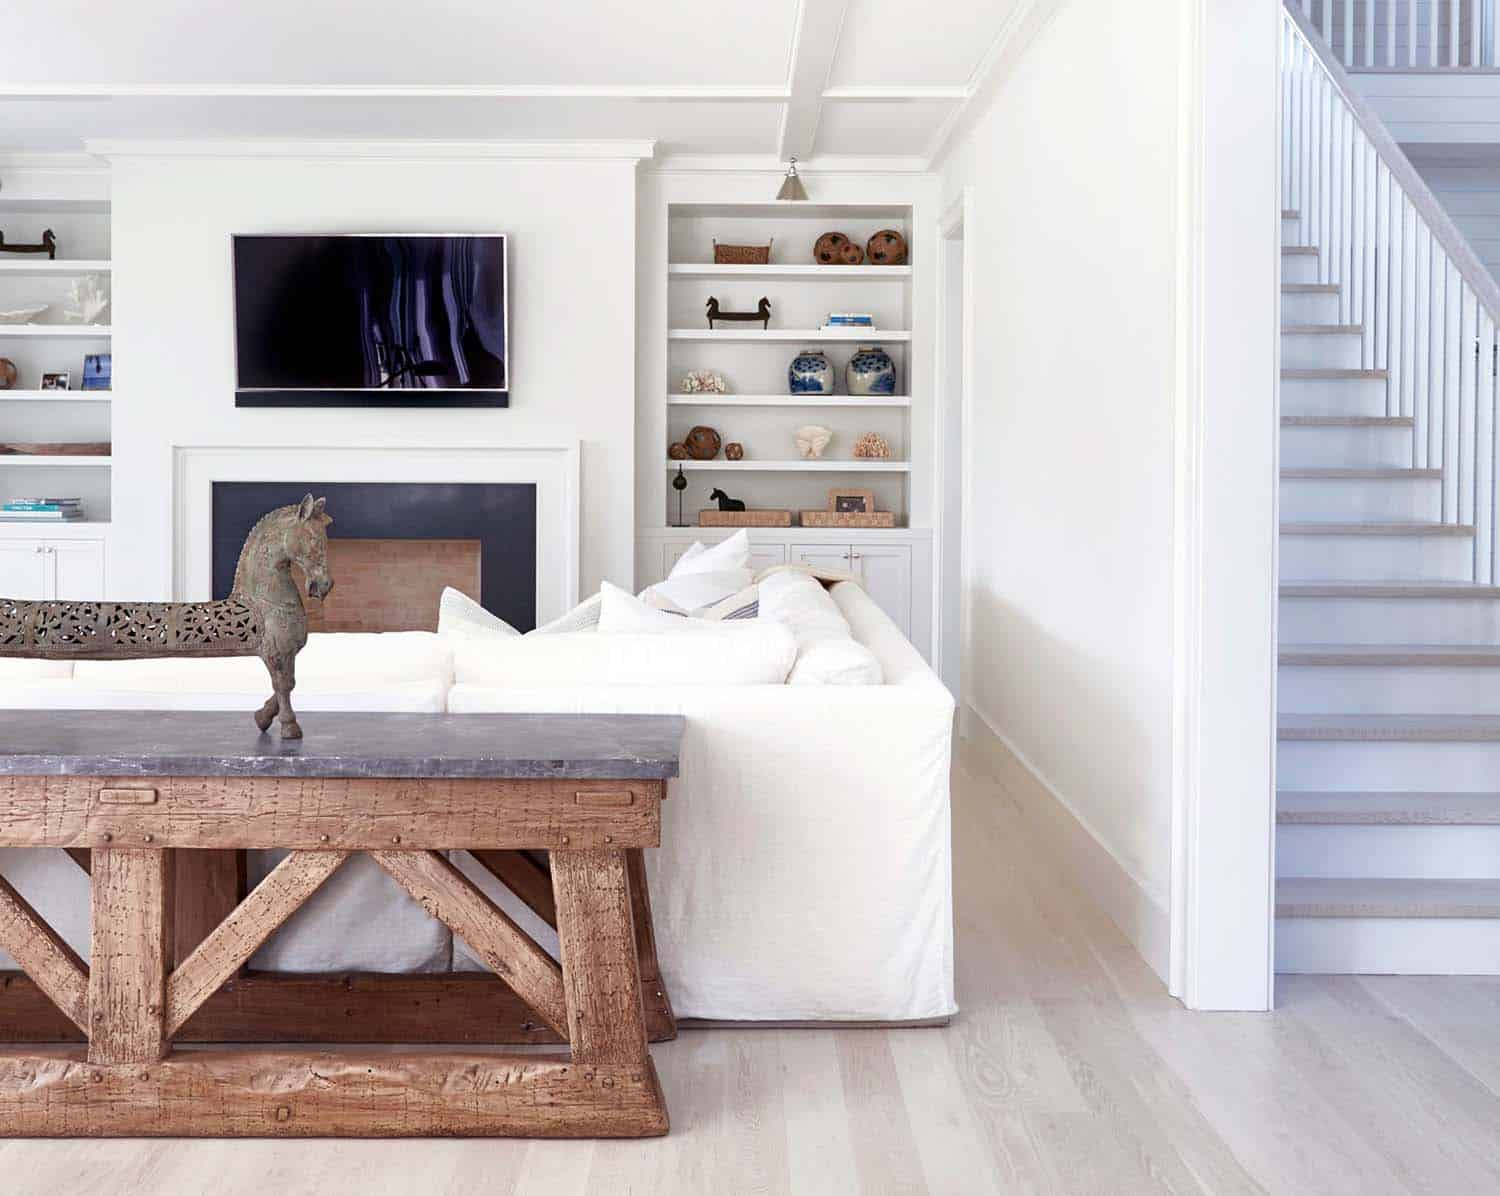 Amagansett Beach House-Chango-Co-05-1 Kindesign